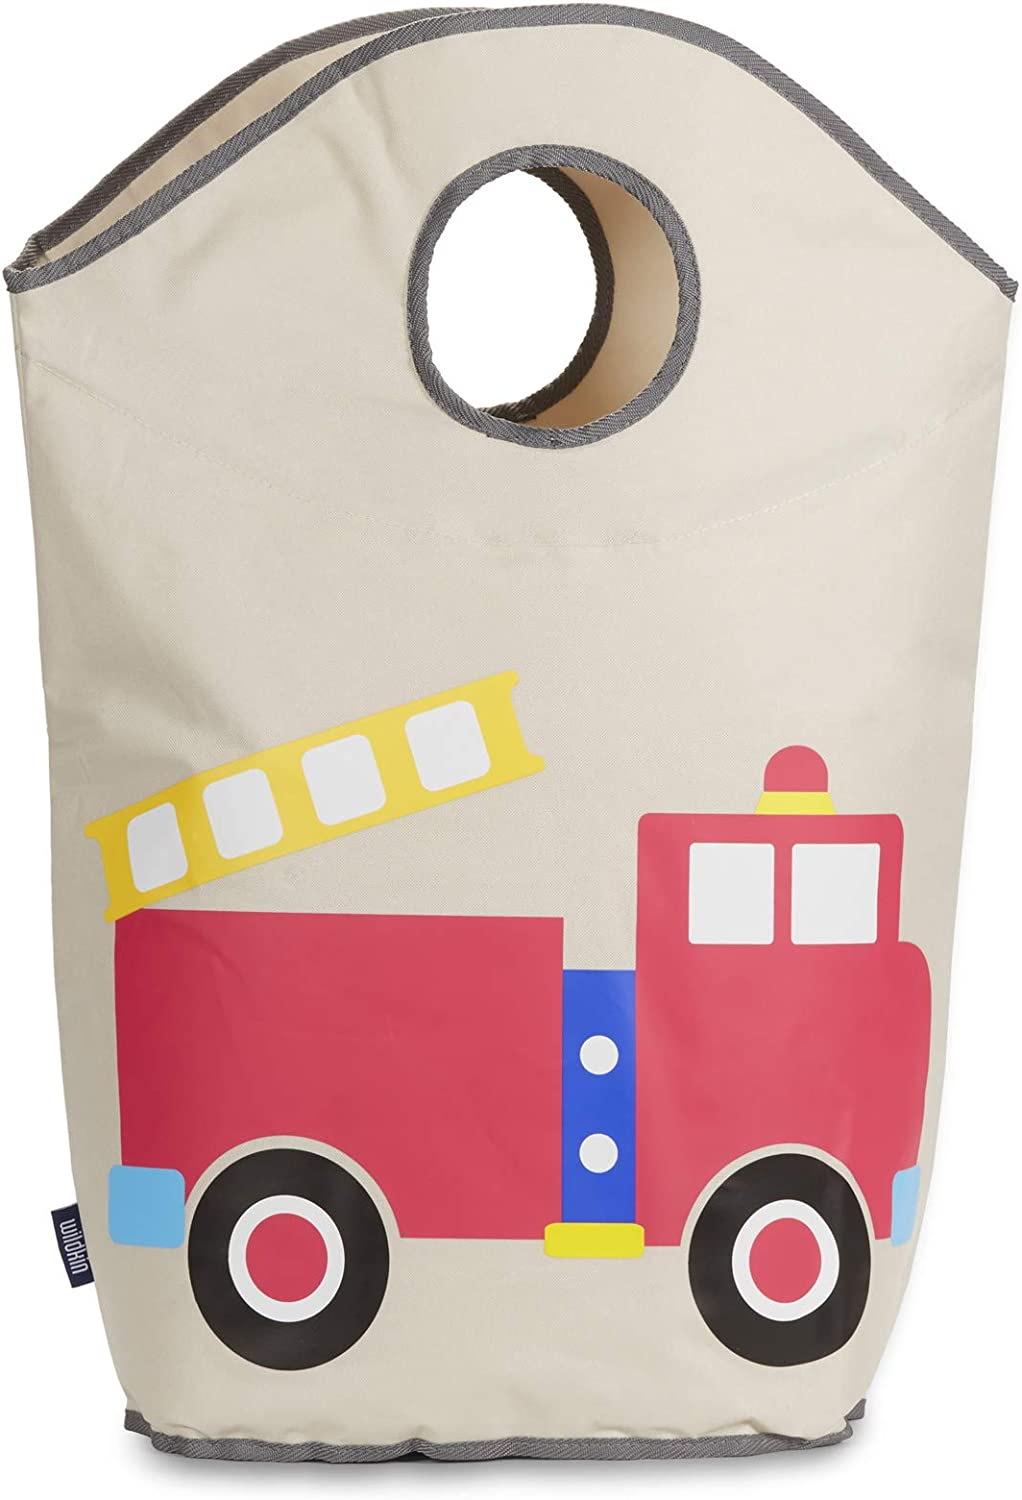 Wildkin Kids Laundry Hamper for Boys and Girls, Collapsible 600 Denier Polyester Fabric Hampers Features Two Carrying Handles and Mesh Bottom, Measures 27 x 16 x 6.5 Inches, Olive Kids (Fire Truck)